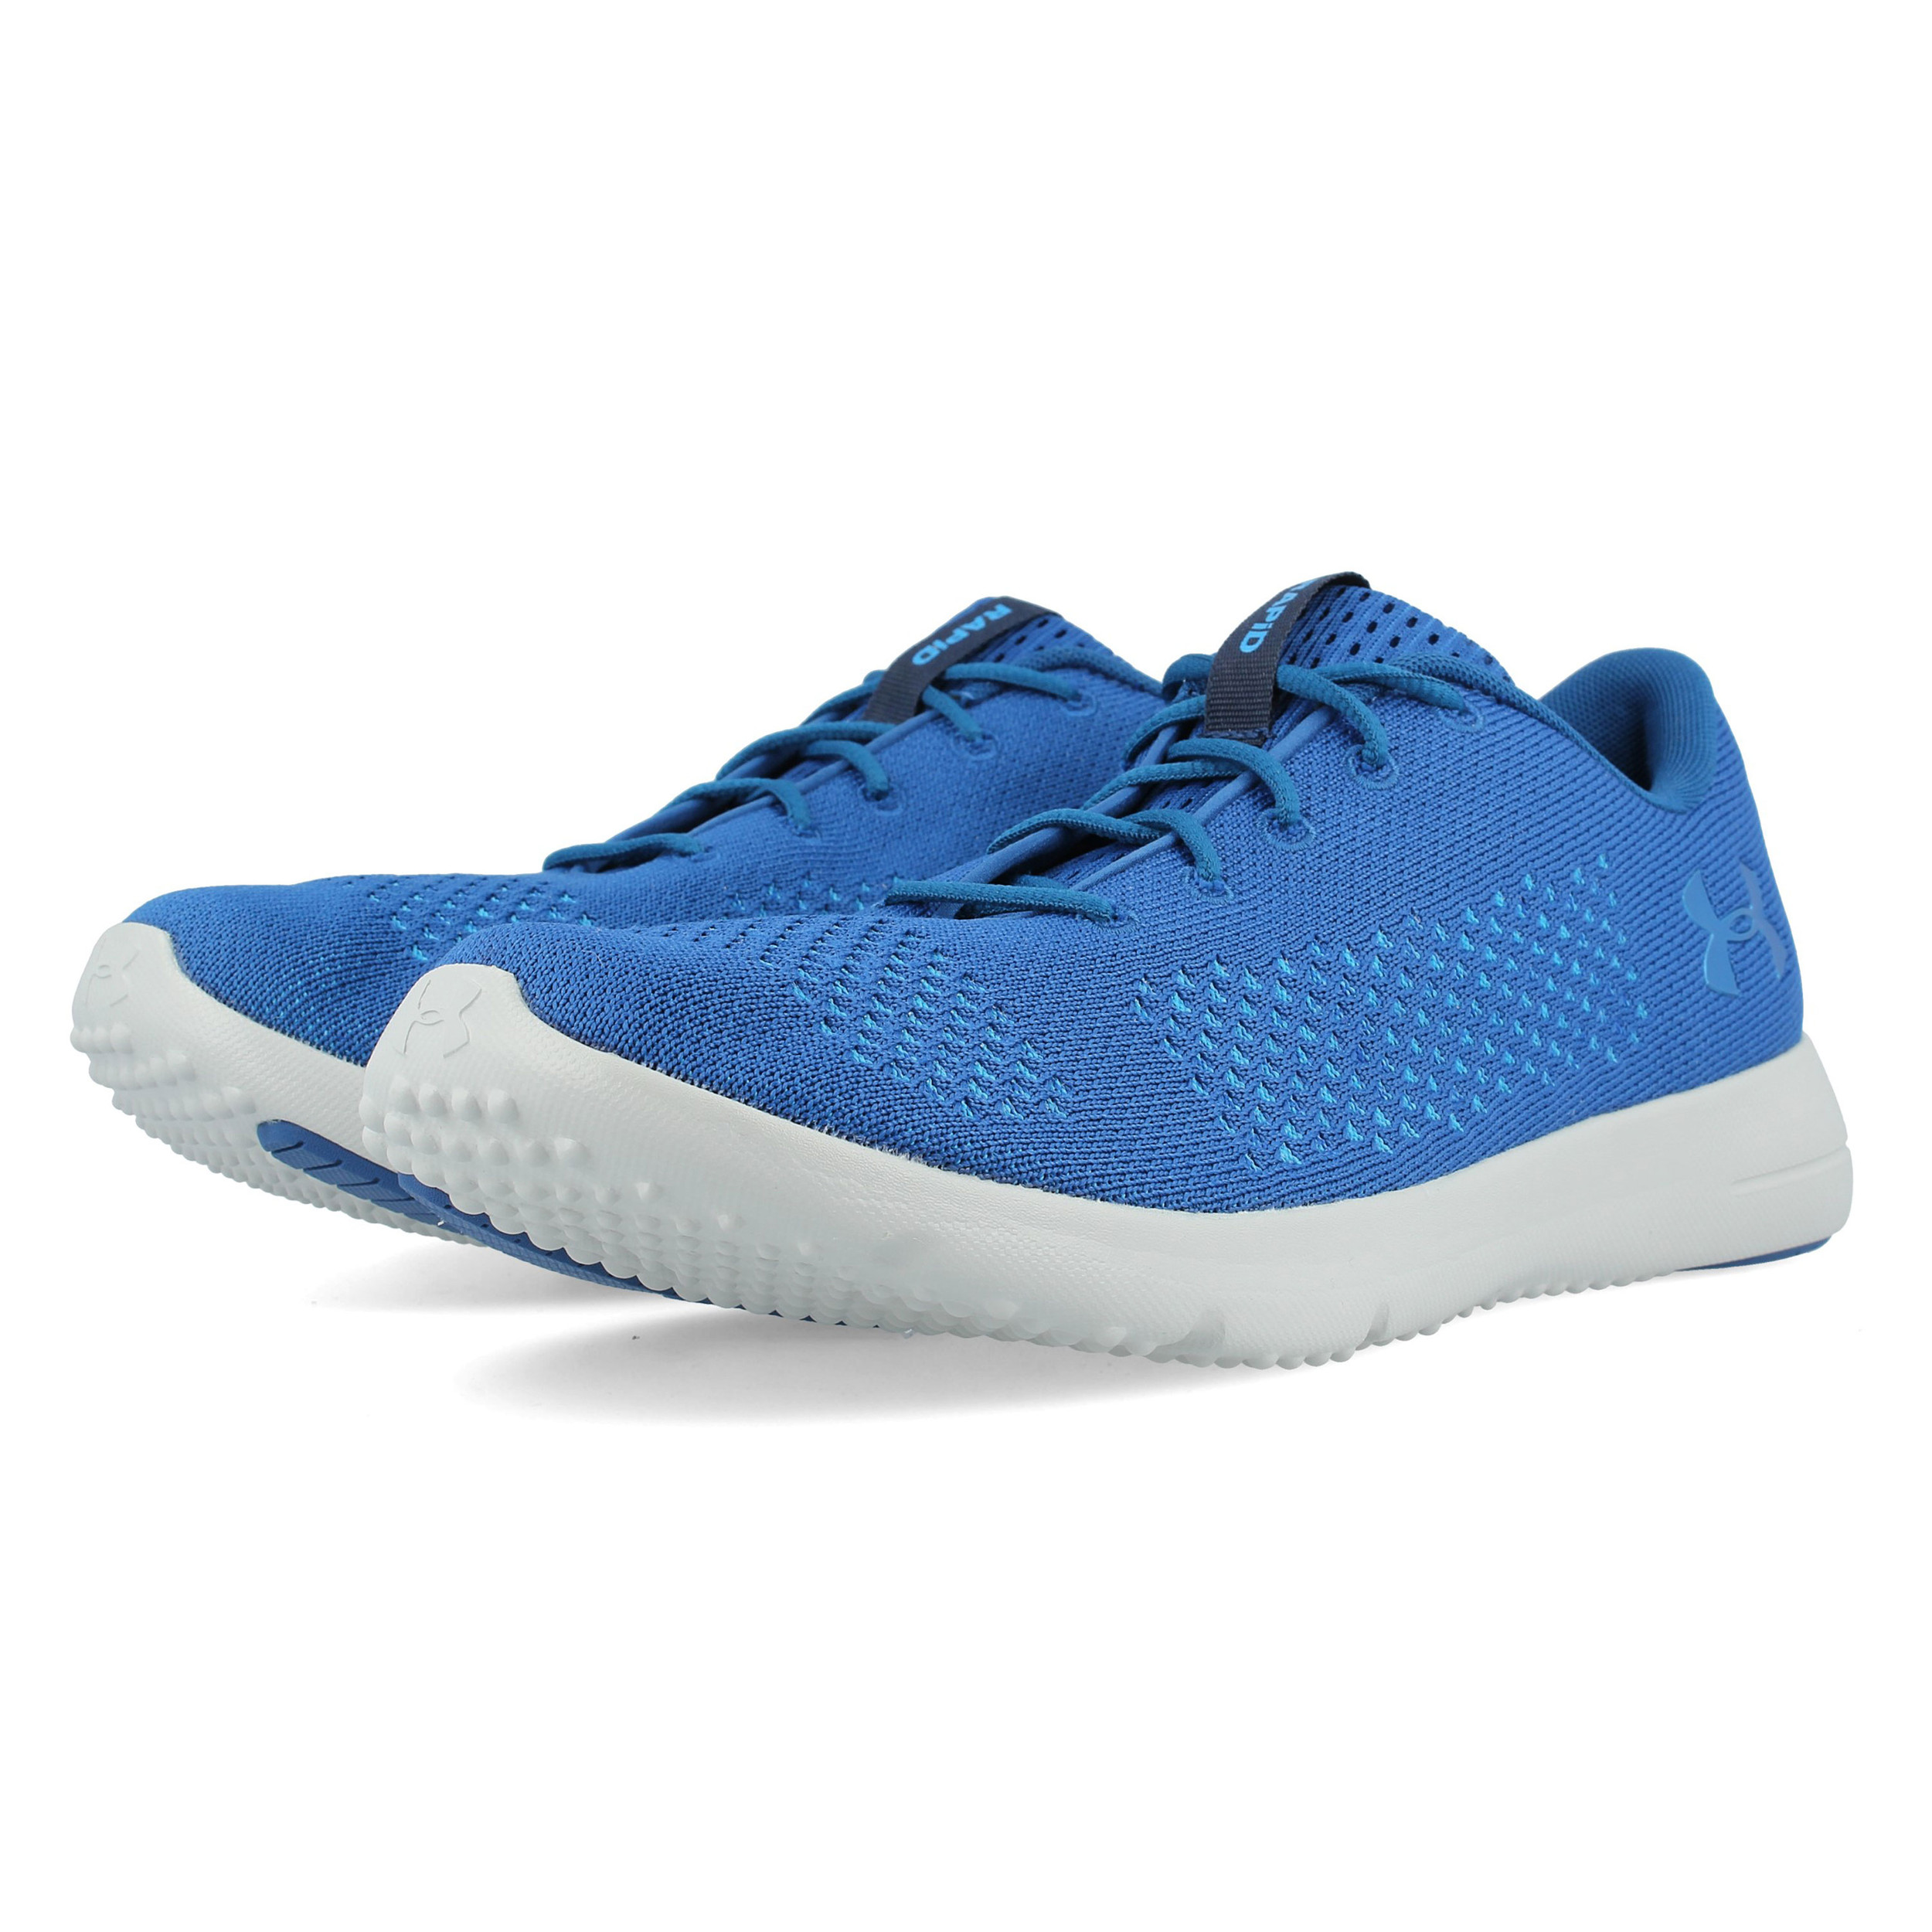 d22eca0949 Details about Under Armour Mens Rapid Running Shoes Trainers Sneakers Blue  Sports Breathable